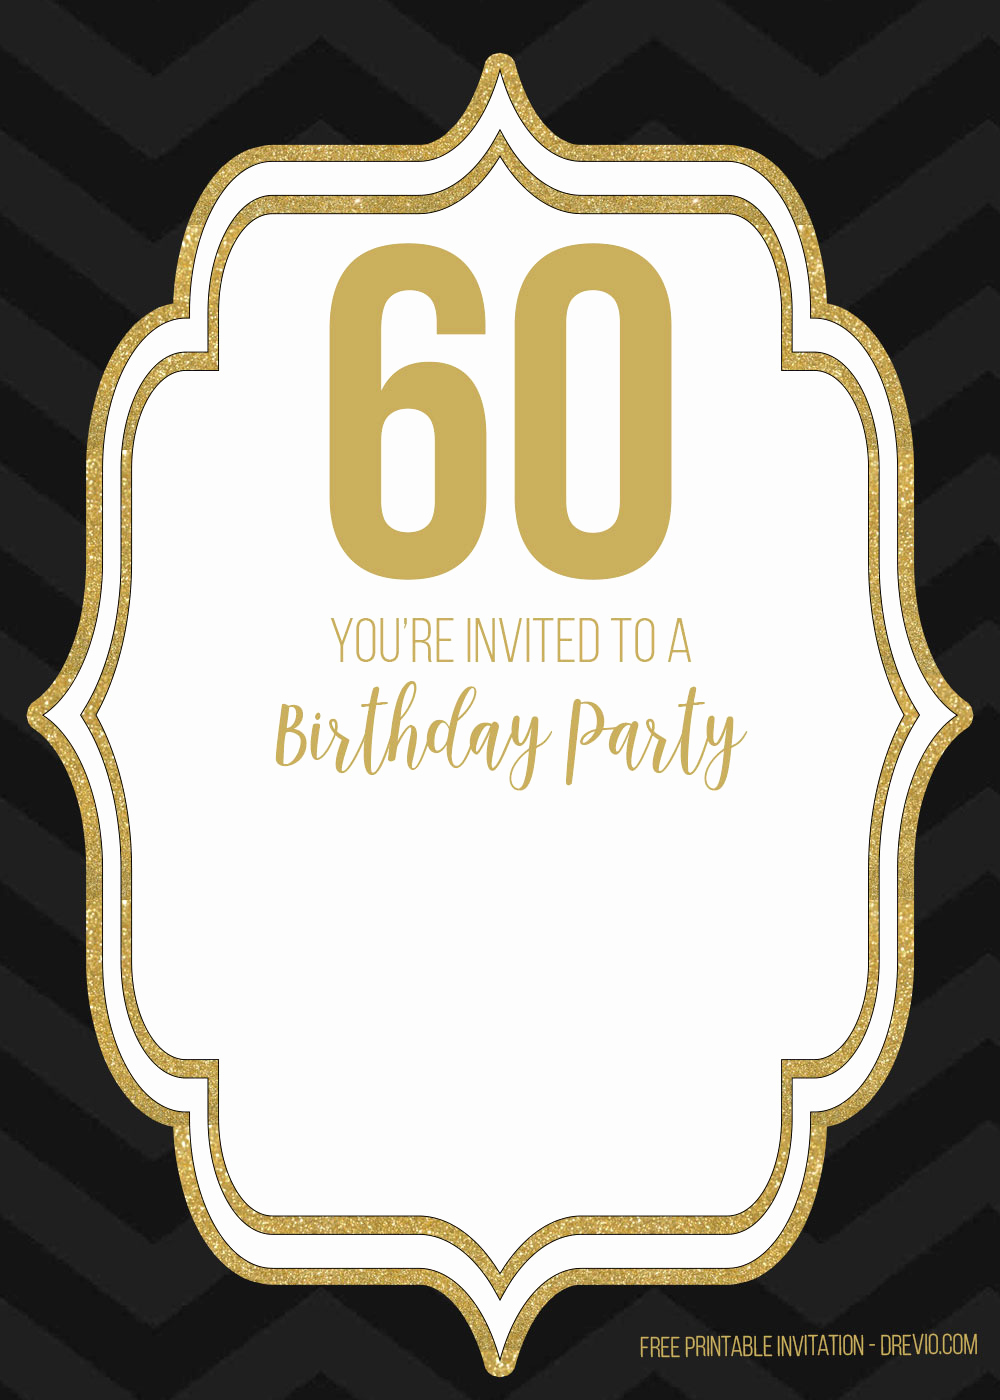 60th Birthday Invitation Template Awesome Free 60th Black Golden Birthday Invitation Templates